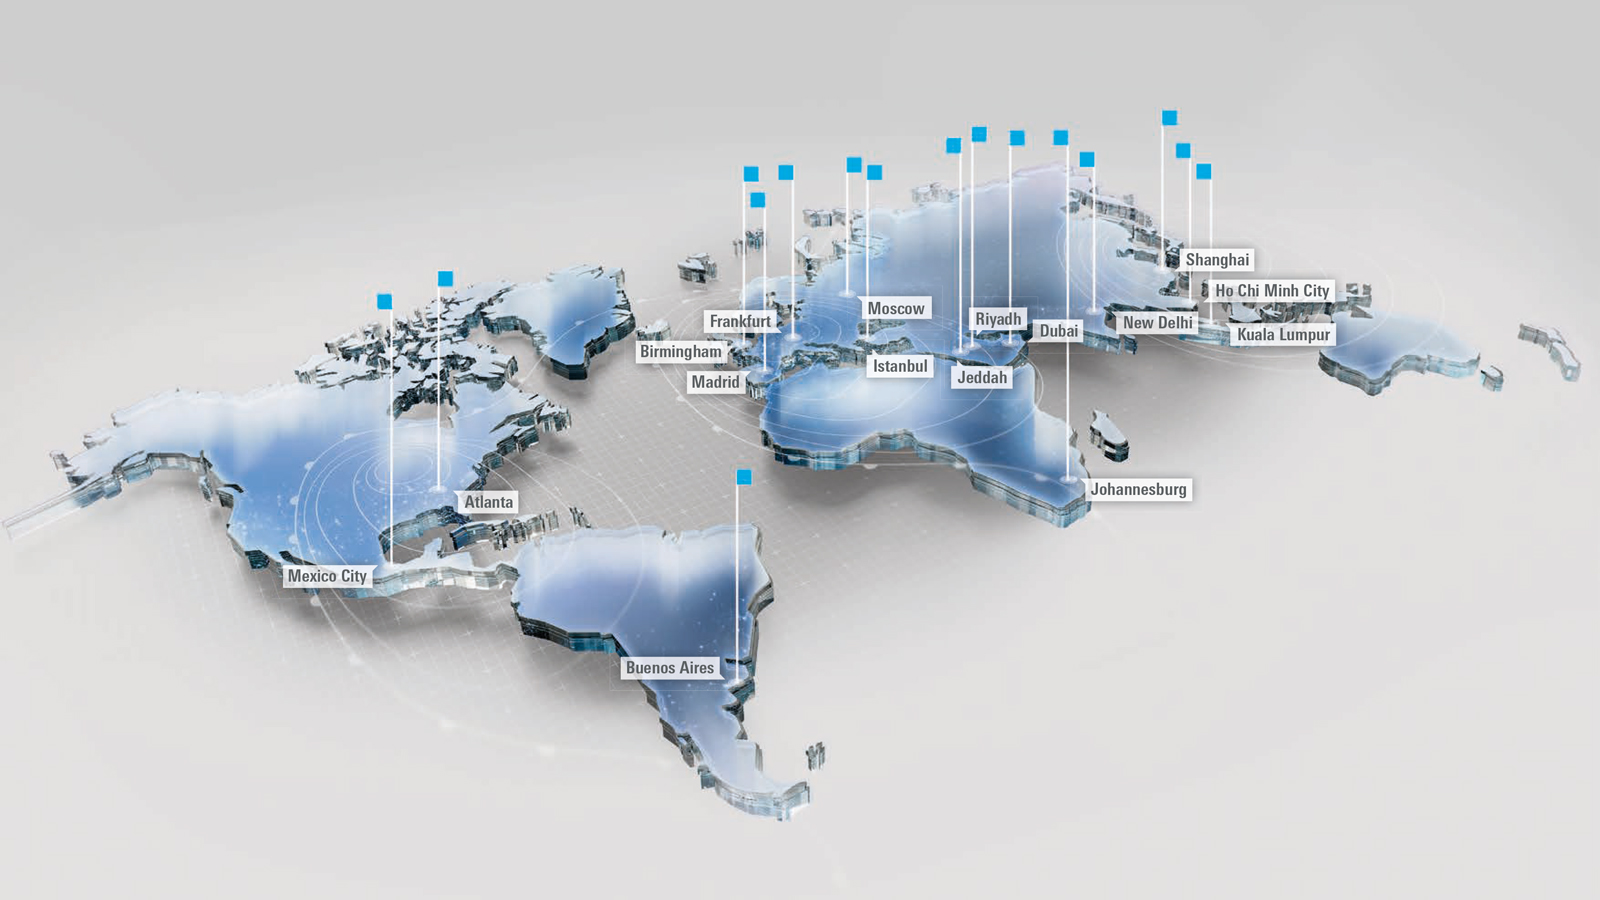 Automechanika Worldwide Map